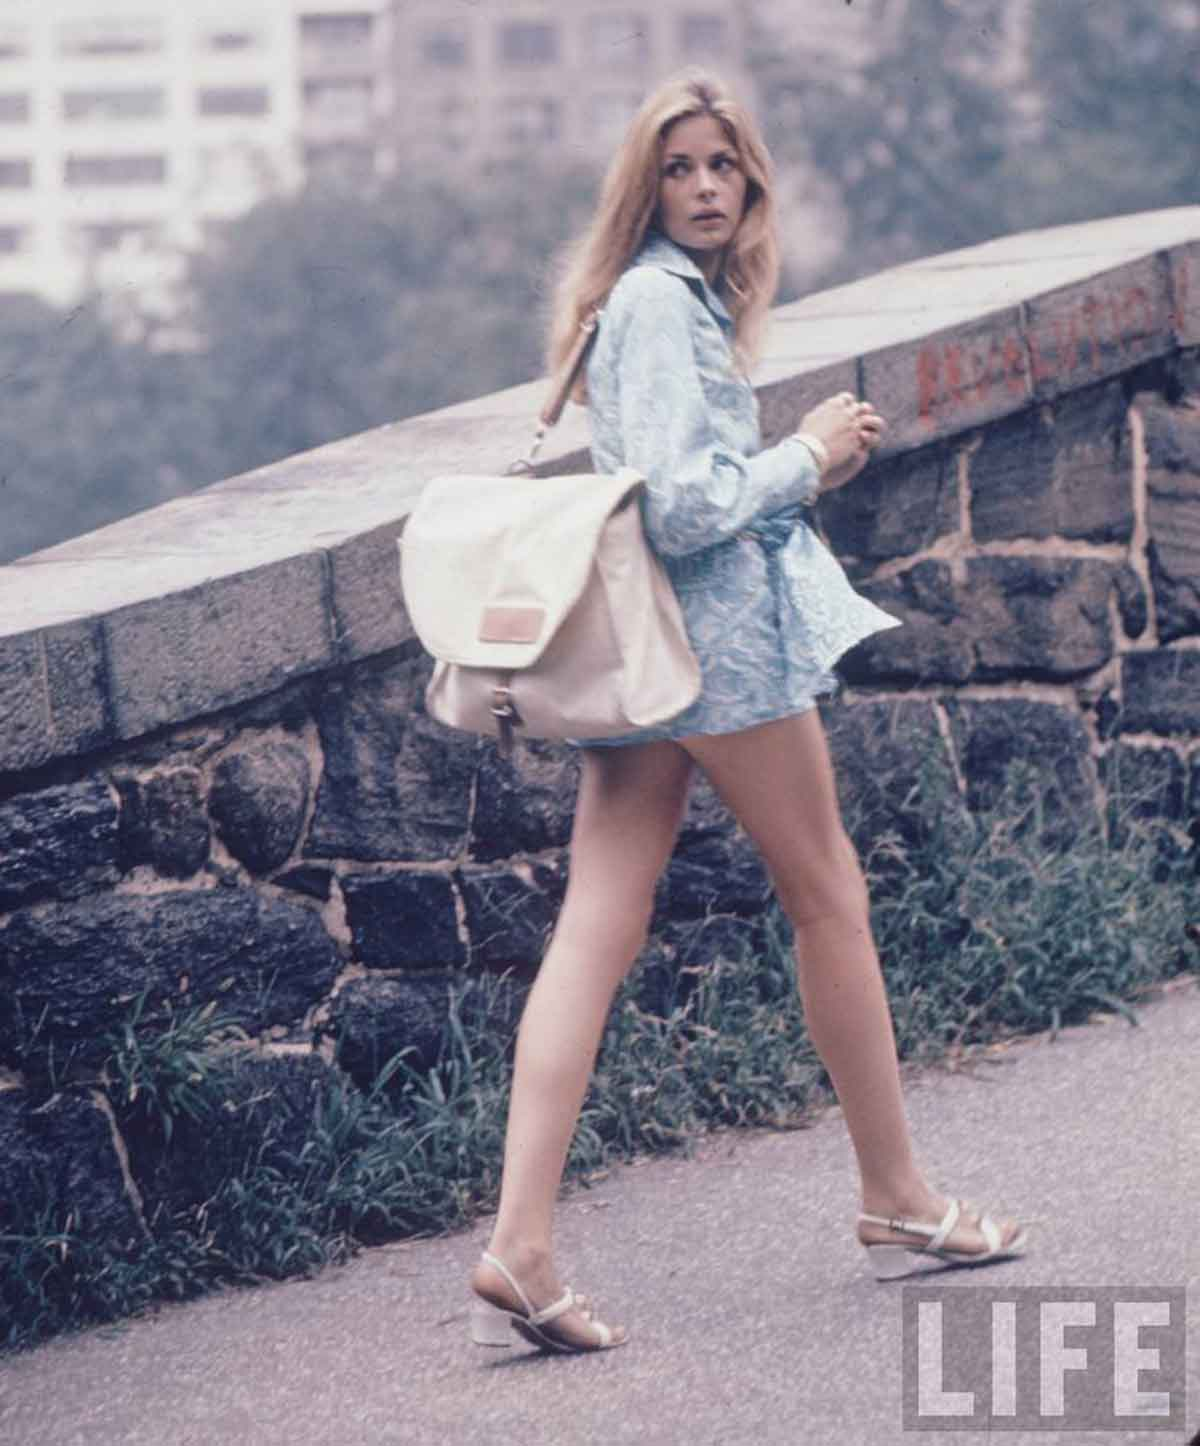 1960s-Fashion---The-New-York-Look-1969-c